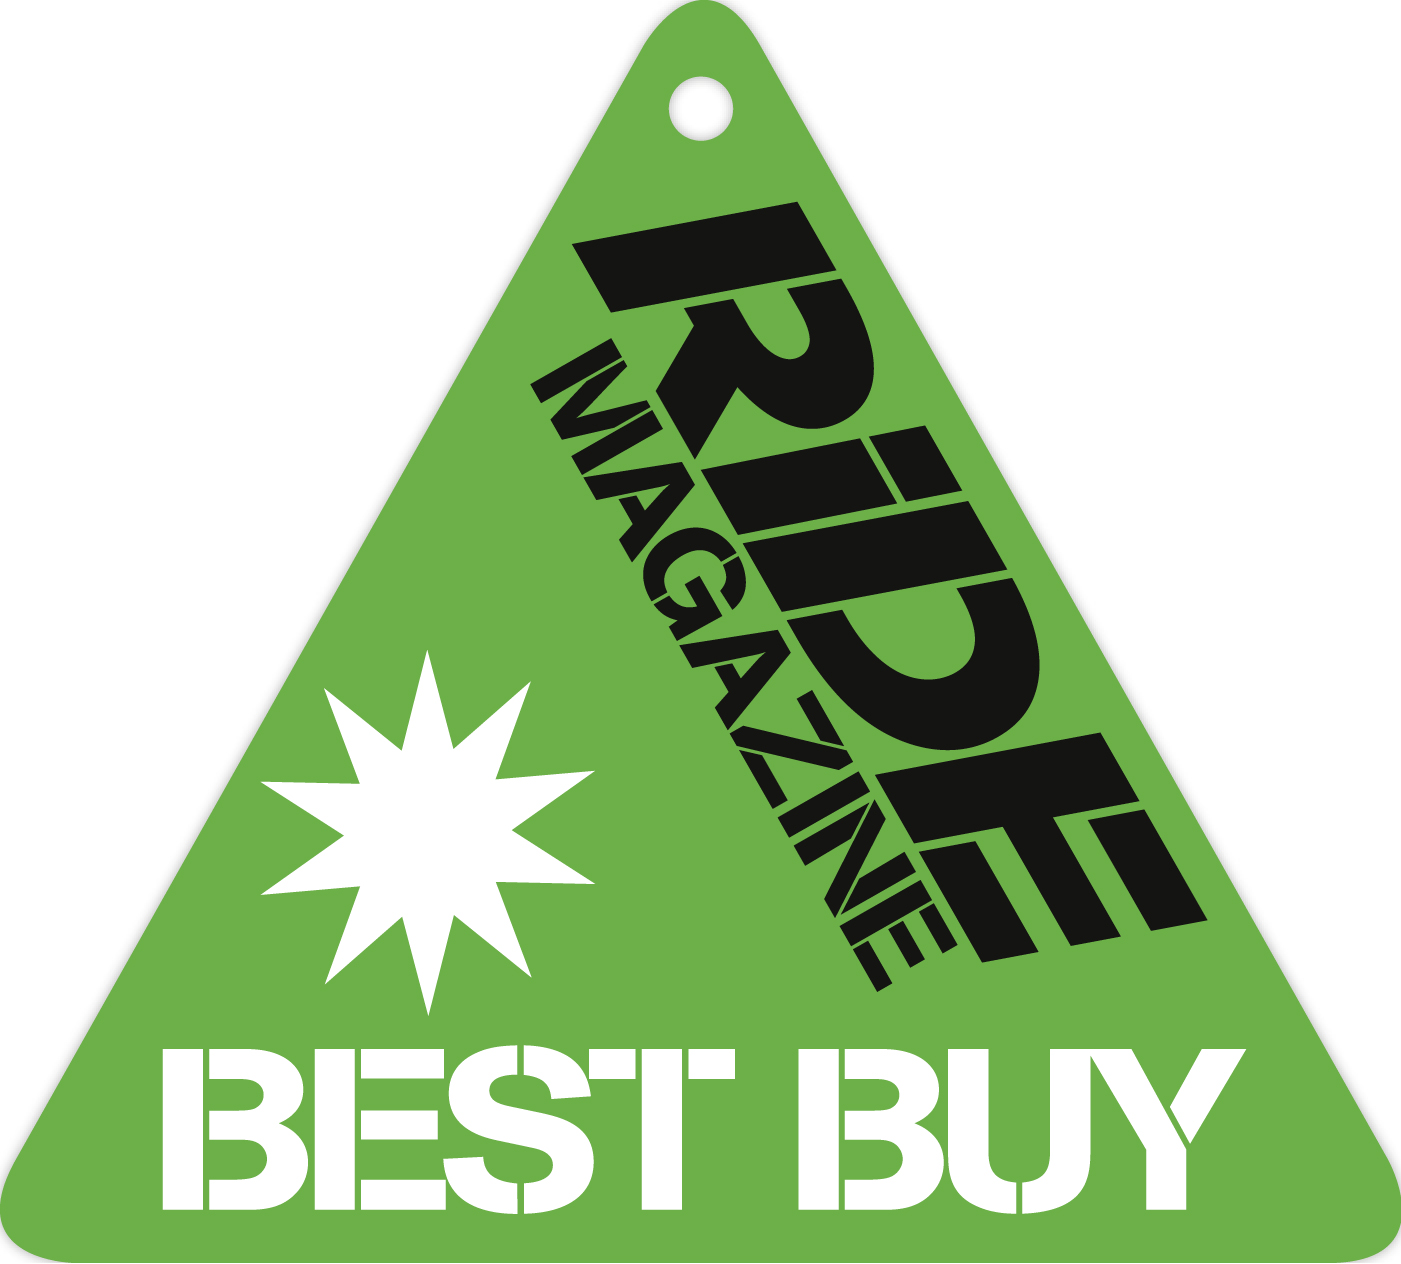 triangle-best-buy